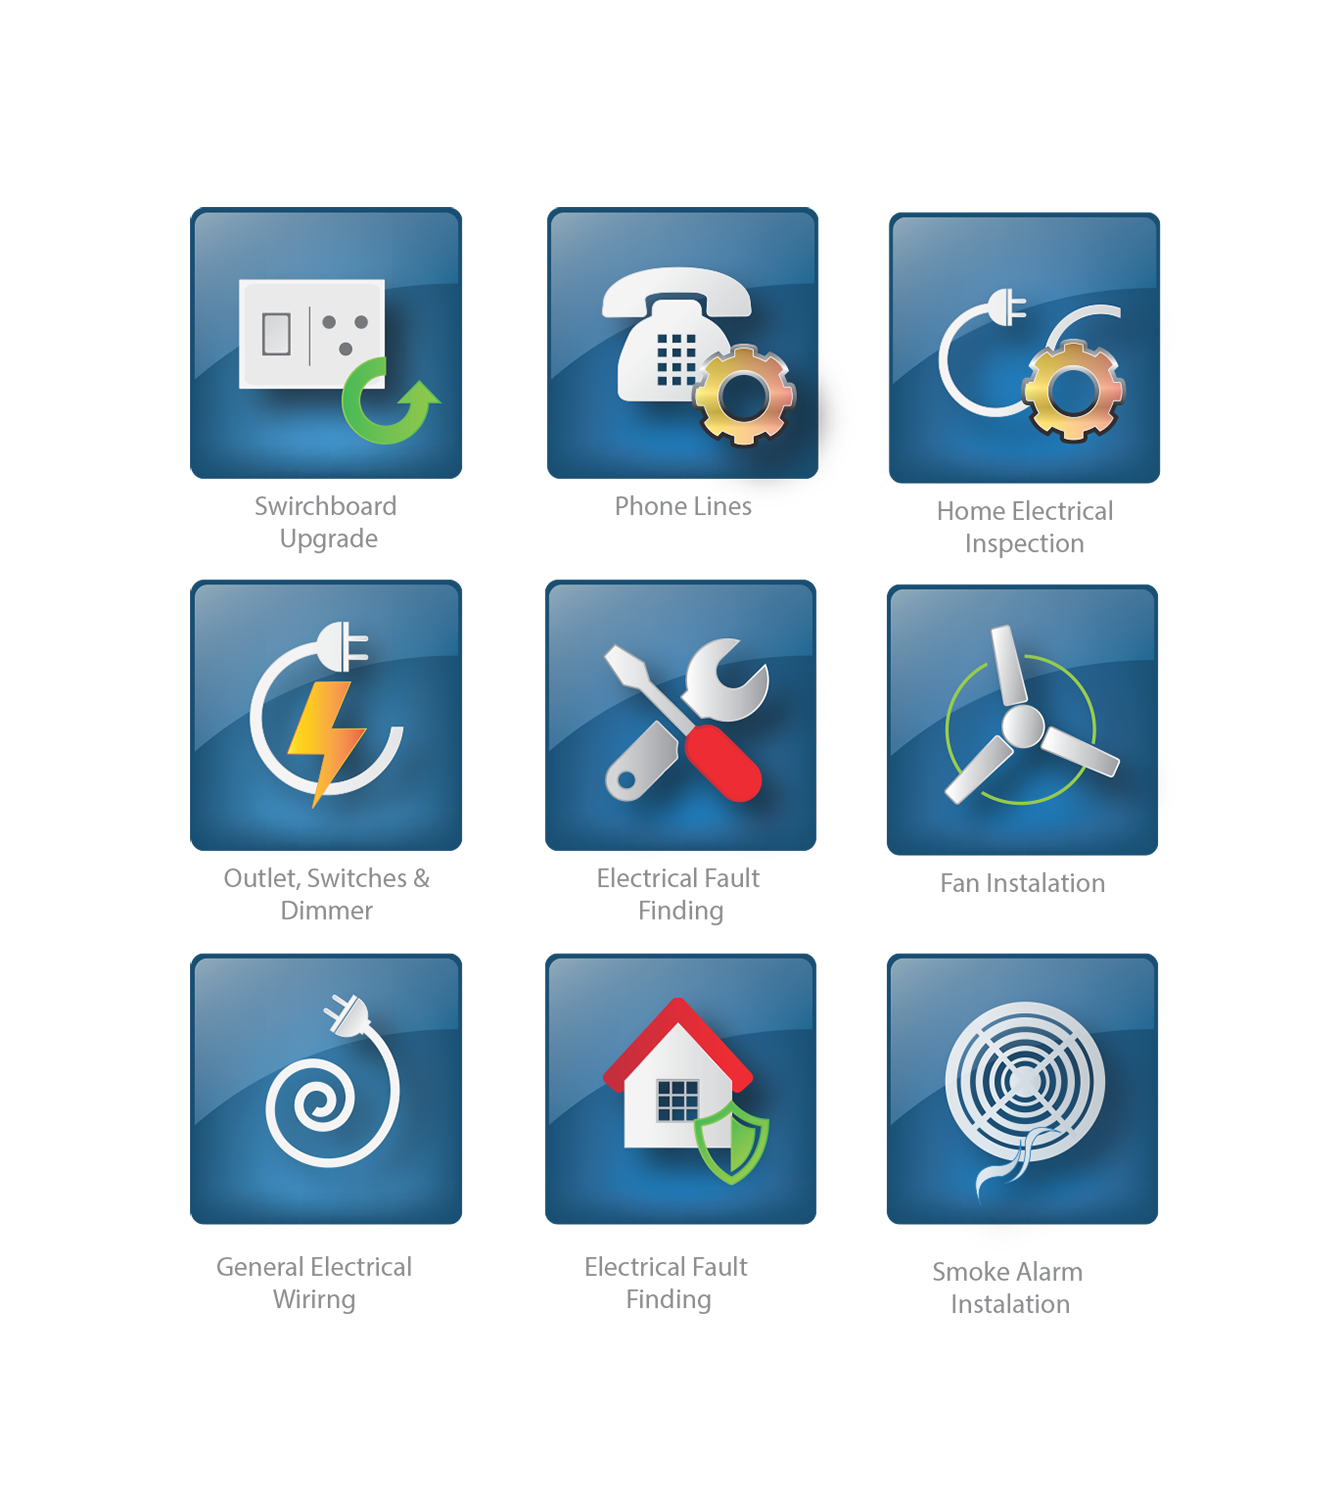 Icon Design By Nafizrahat For This Project